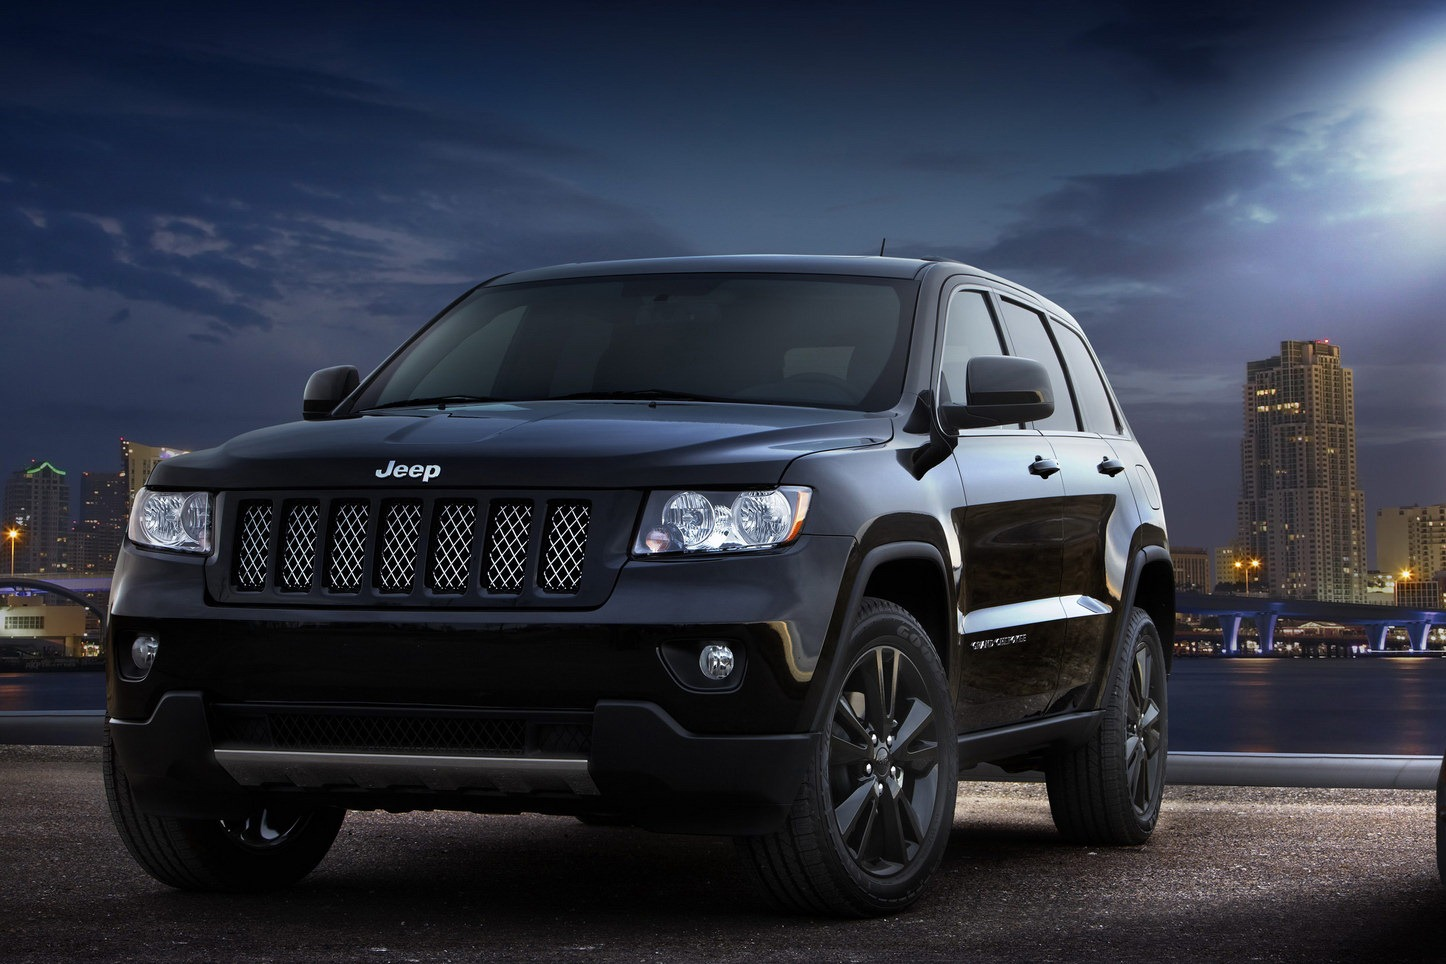 Stealthy Jeep Grand Cherokee Special Edition